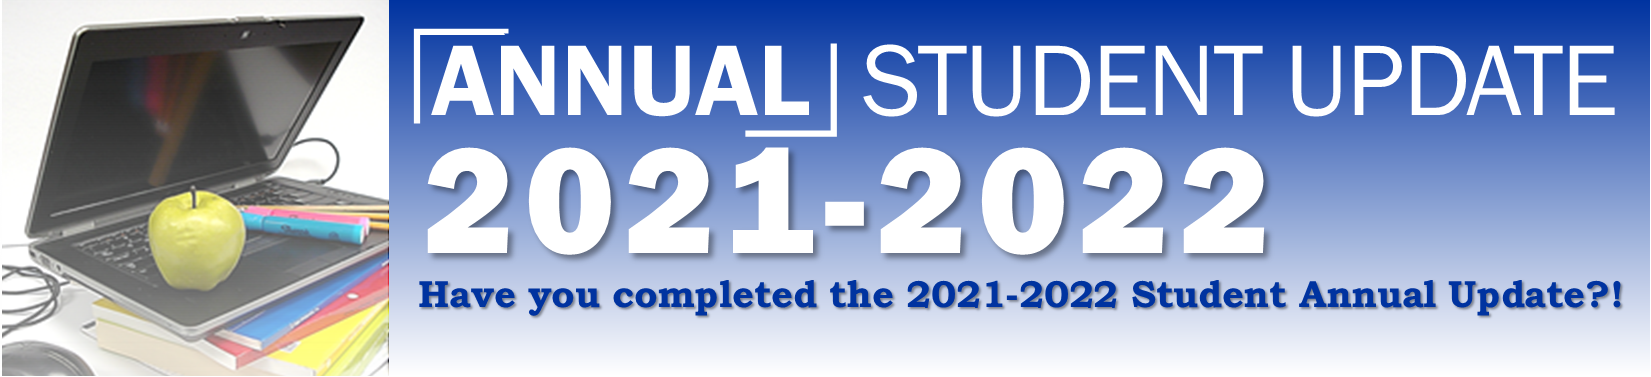 Annual Student Update Banner